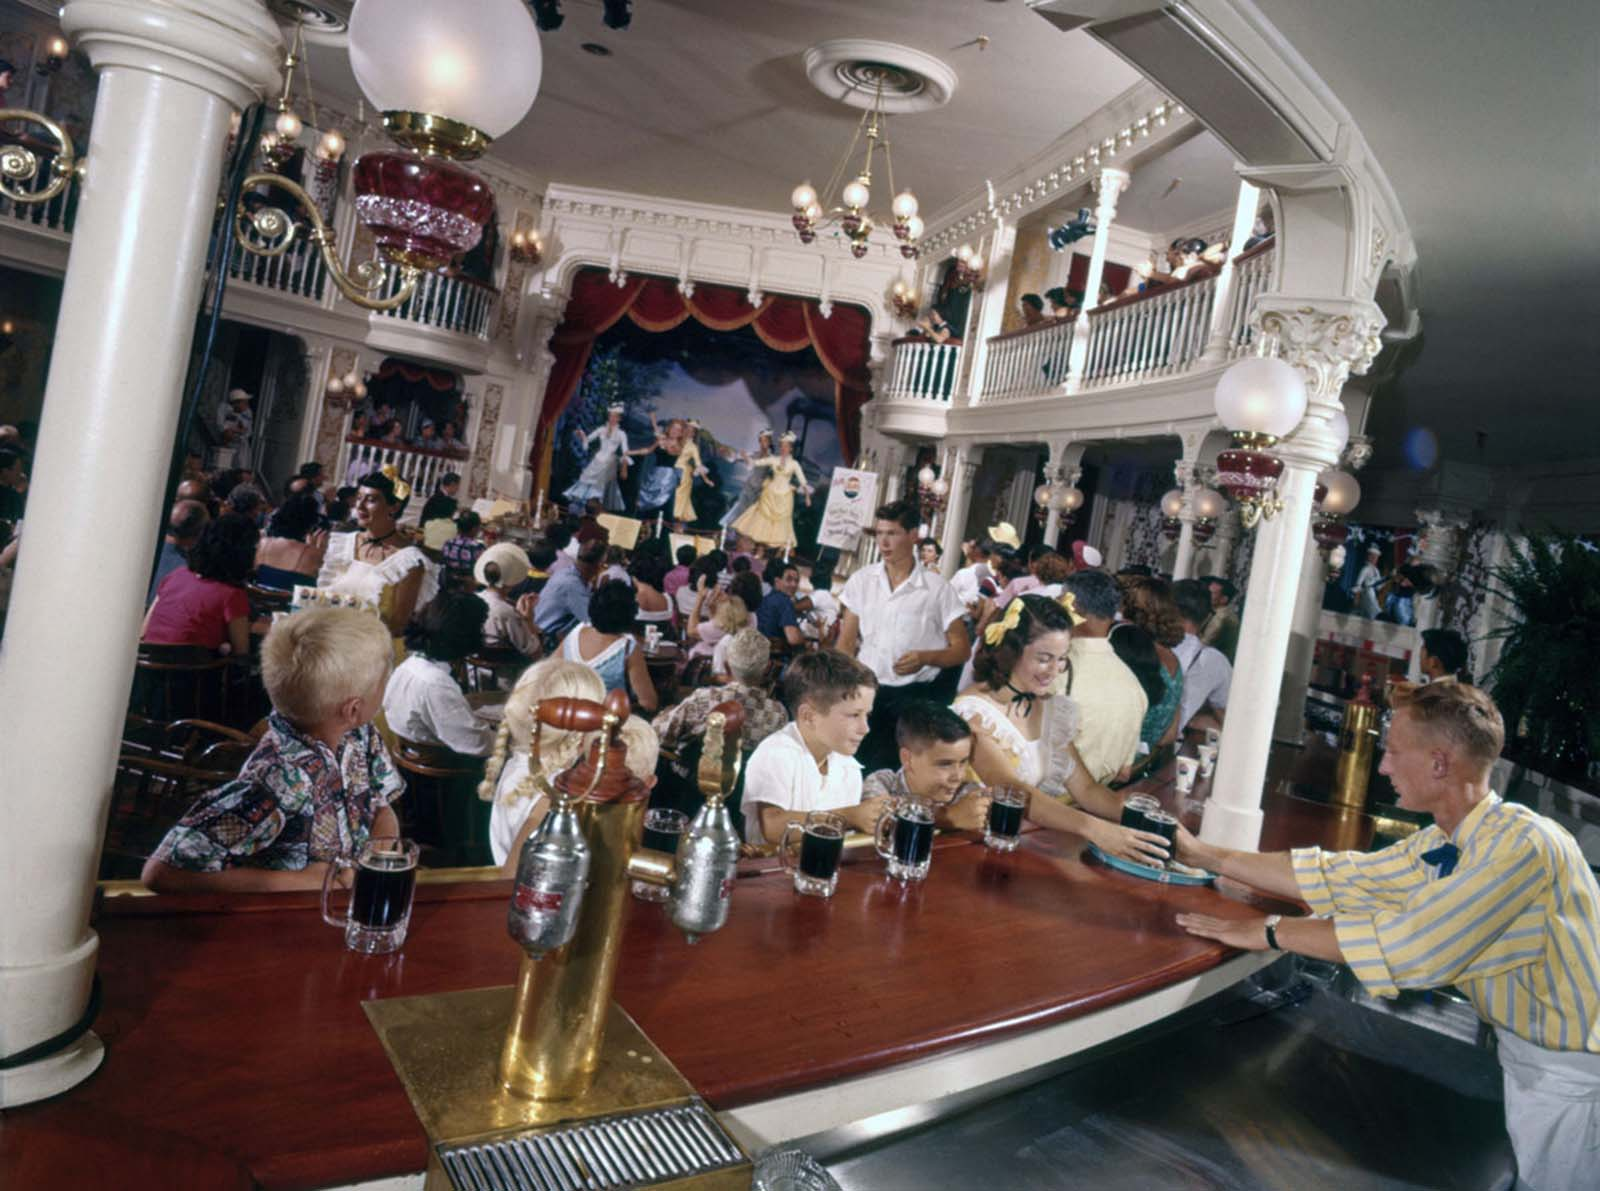 A children's saloon, the Golden Horseshoe, photographed at Disneyland on July 17, 1955.